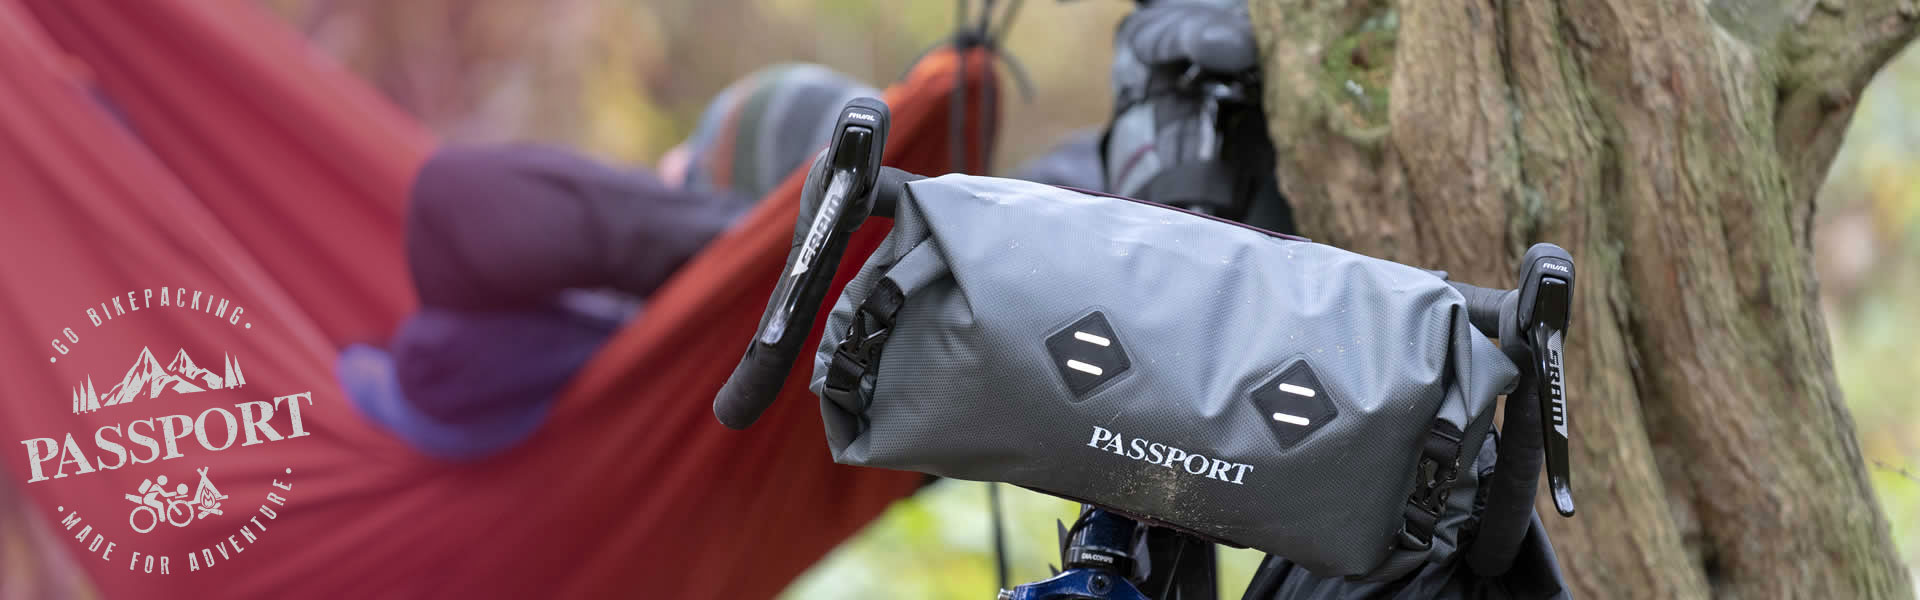 Passport bikepacking